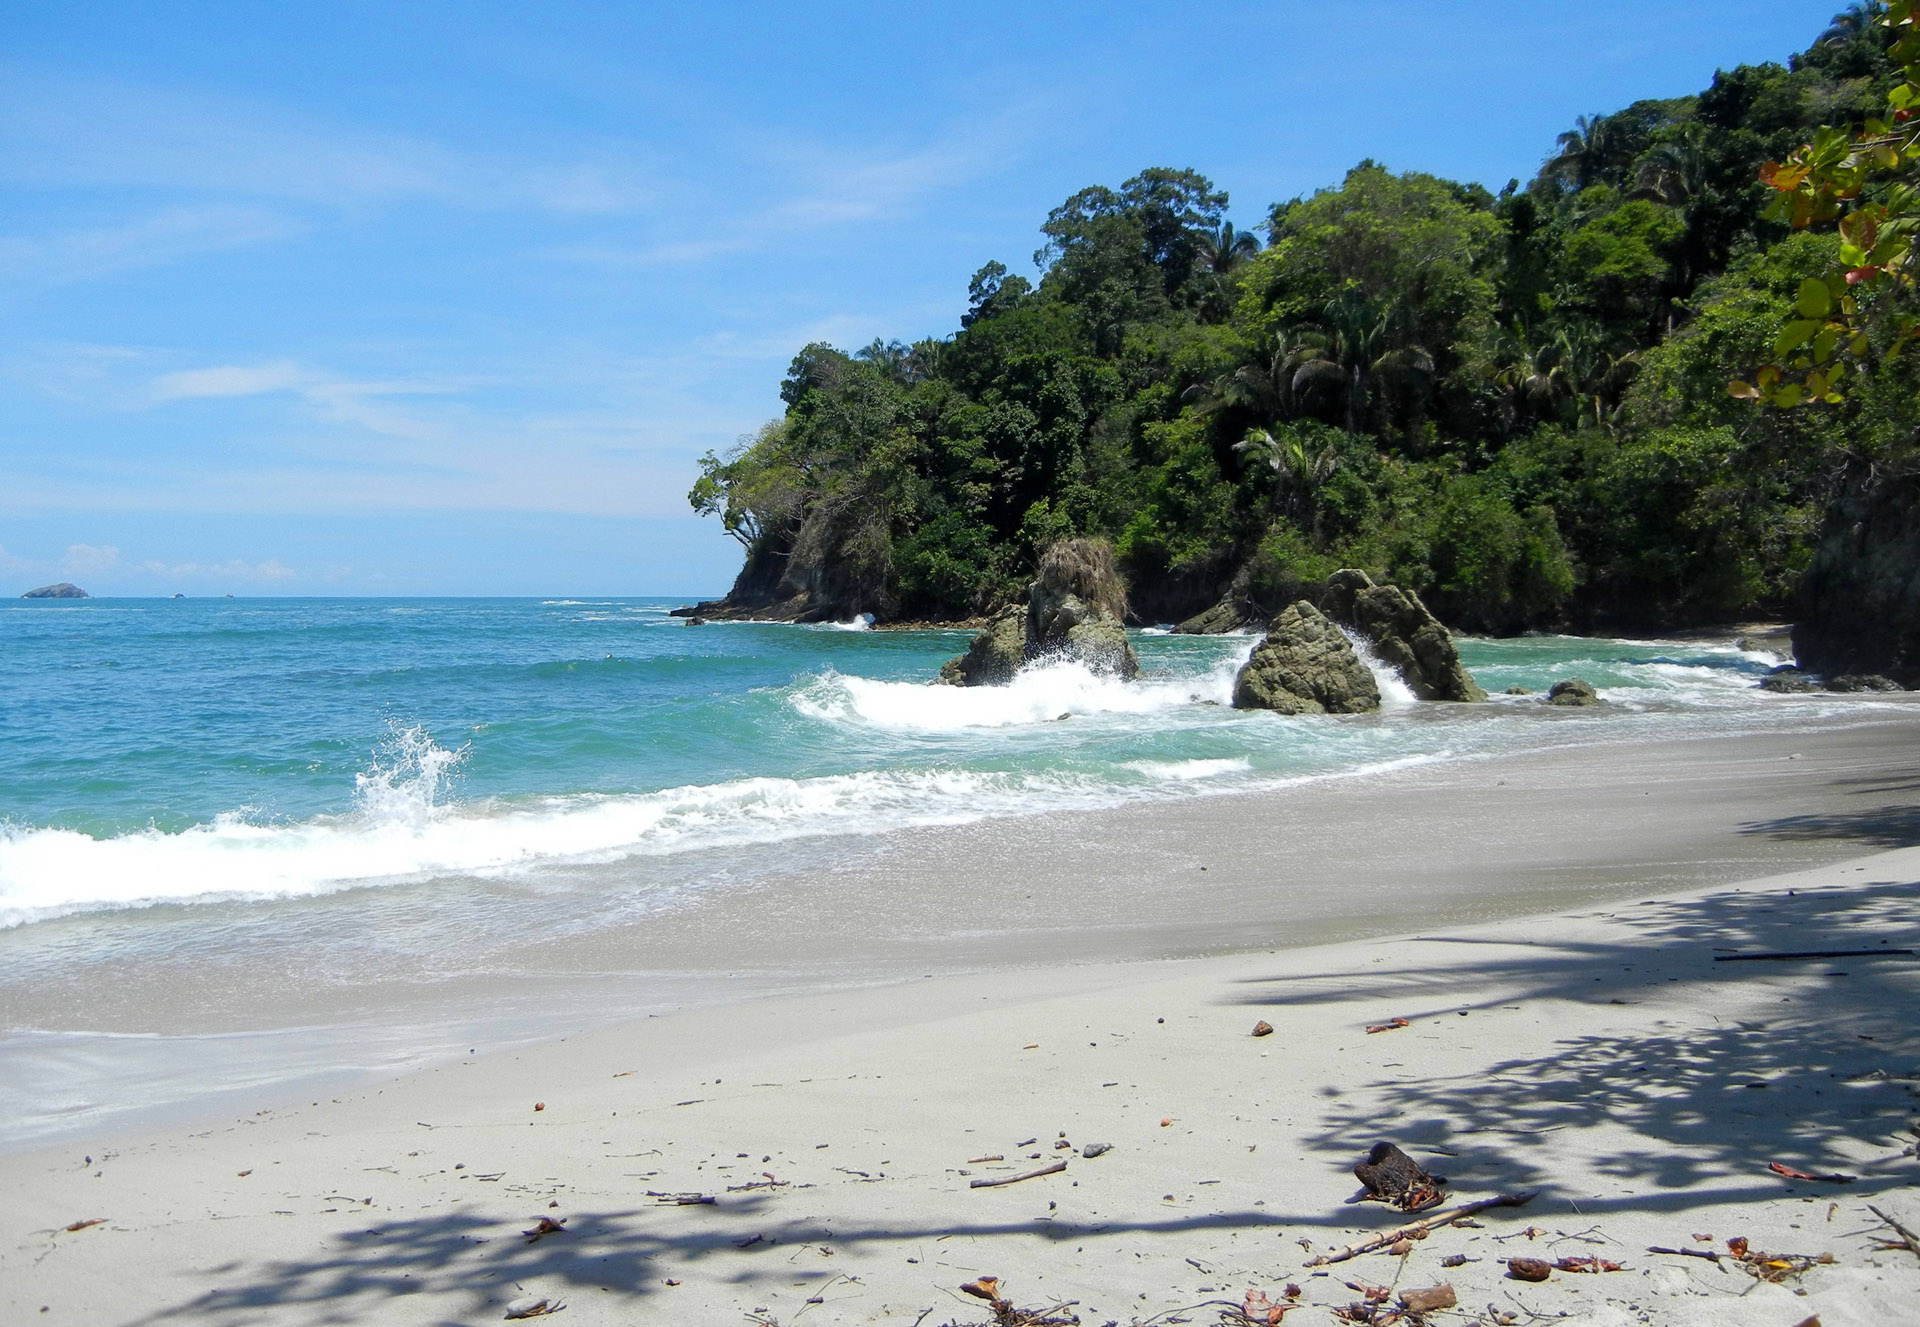 17_Playa Manuel Antonio_Manuel Antonio National Park, Costa Rica-2